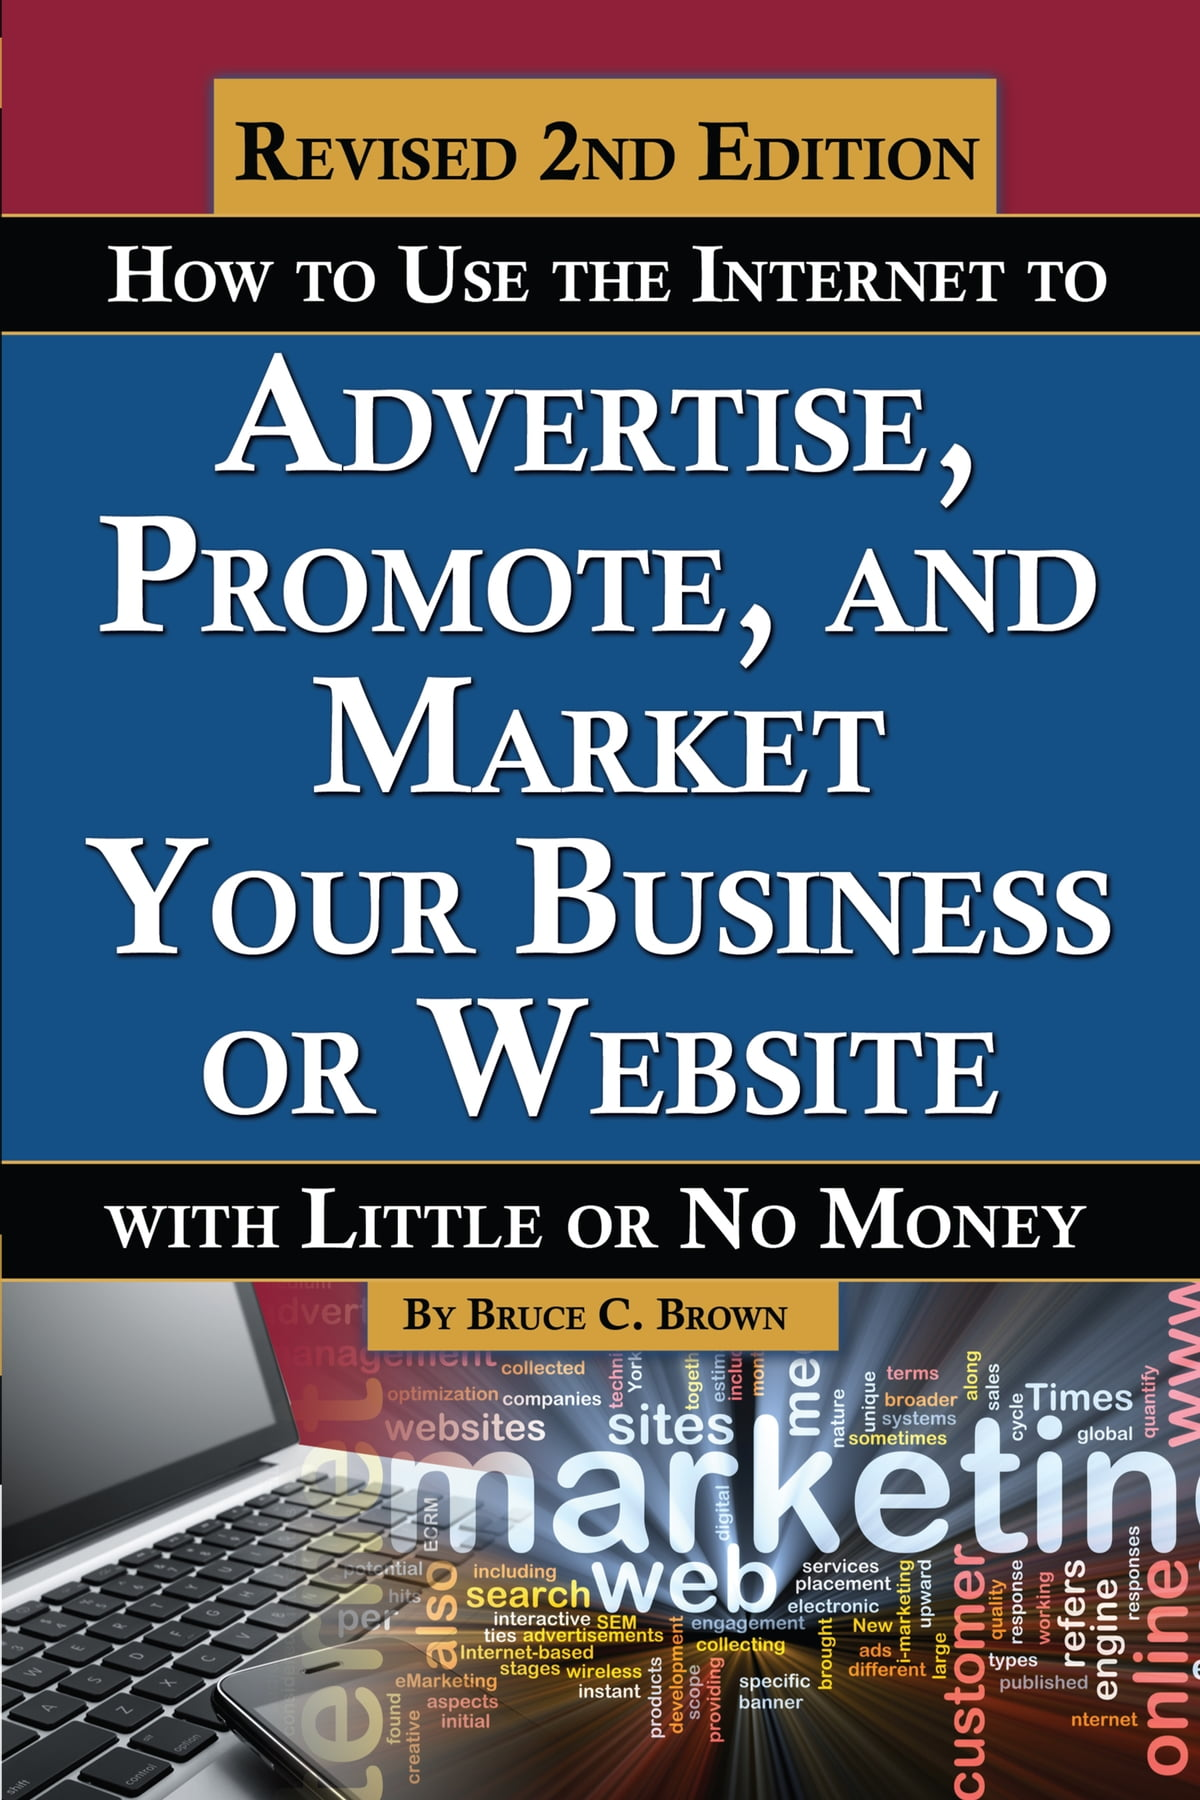 How To Use The Internet To Advertise Promote And Market Your Business Or Website With Little No Money REVISED 2ND EDITION Ebook By Bruce Brown